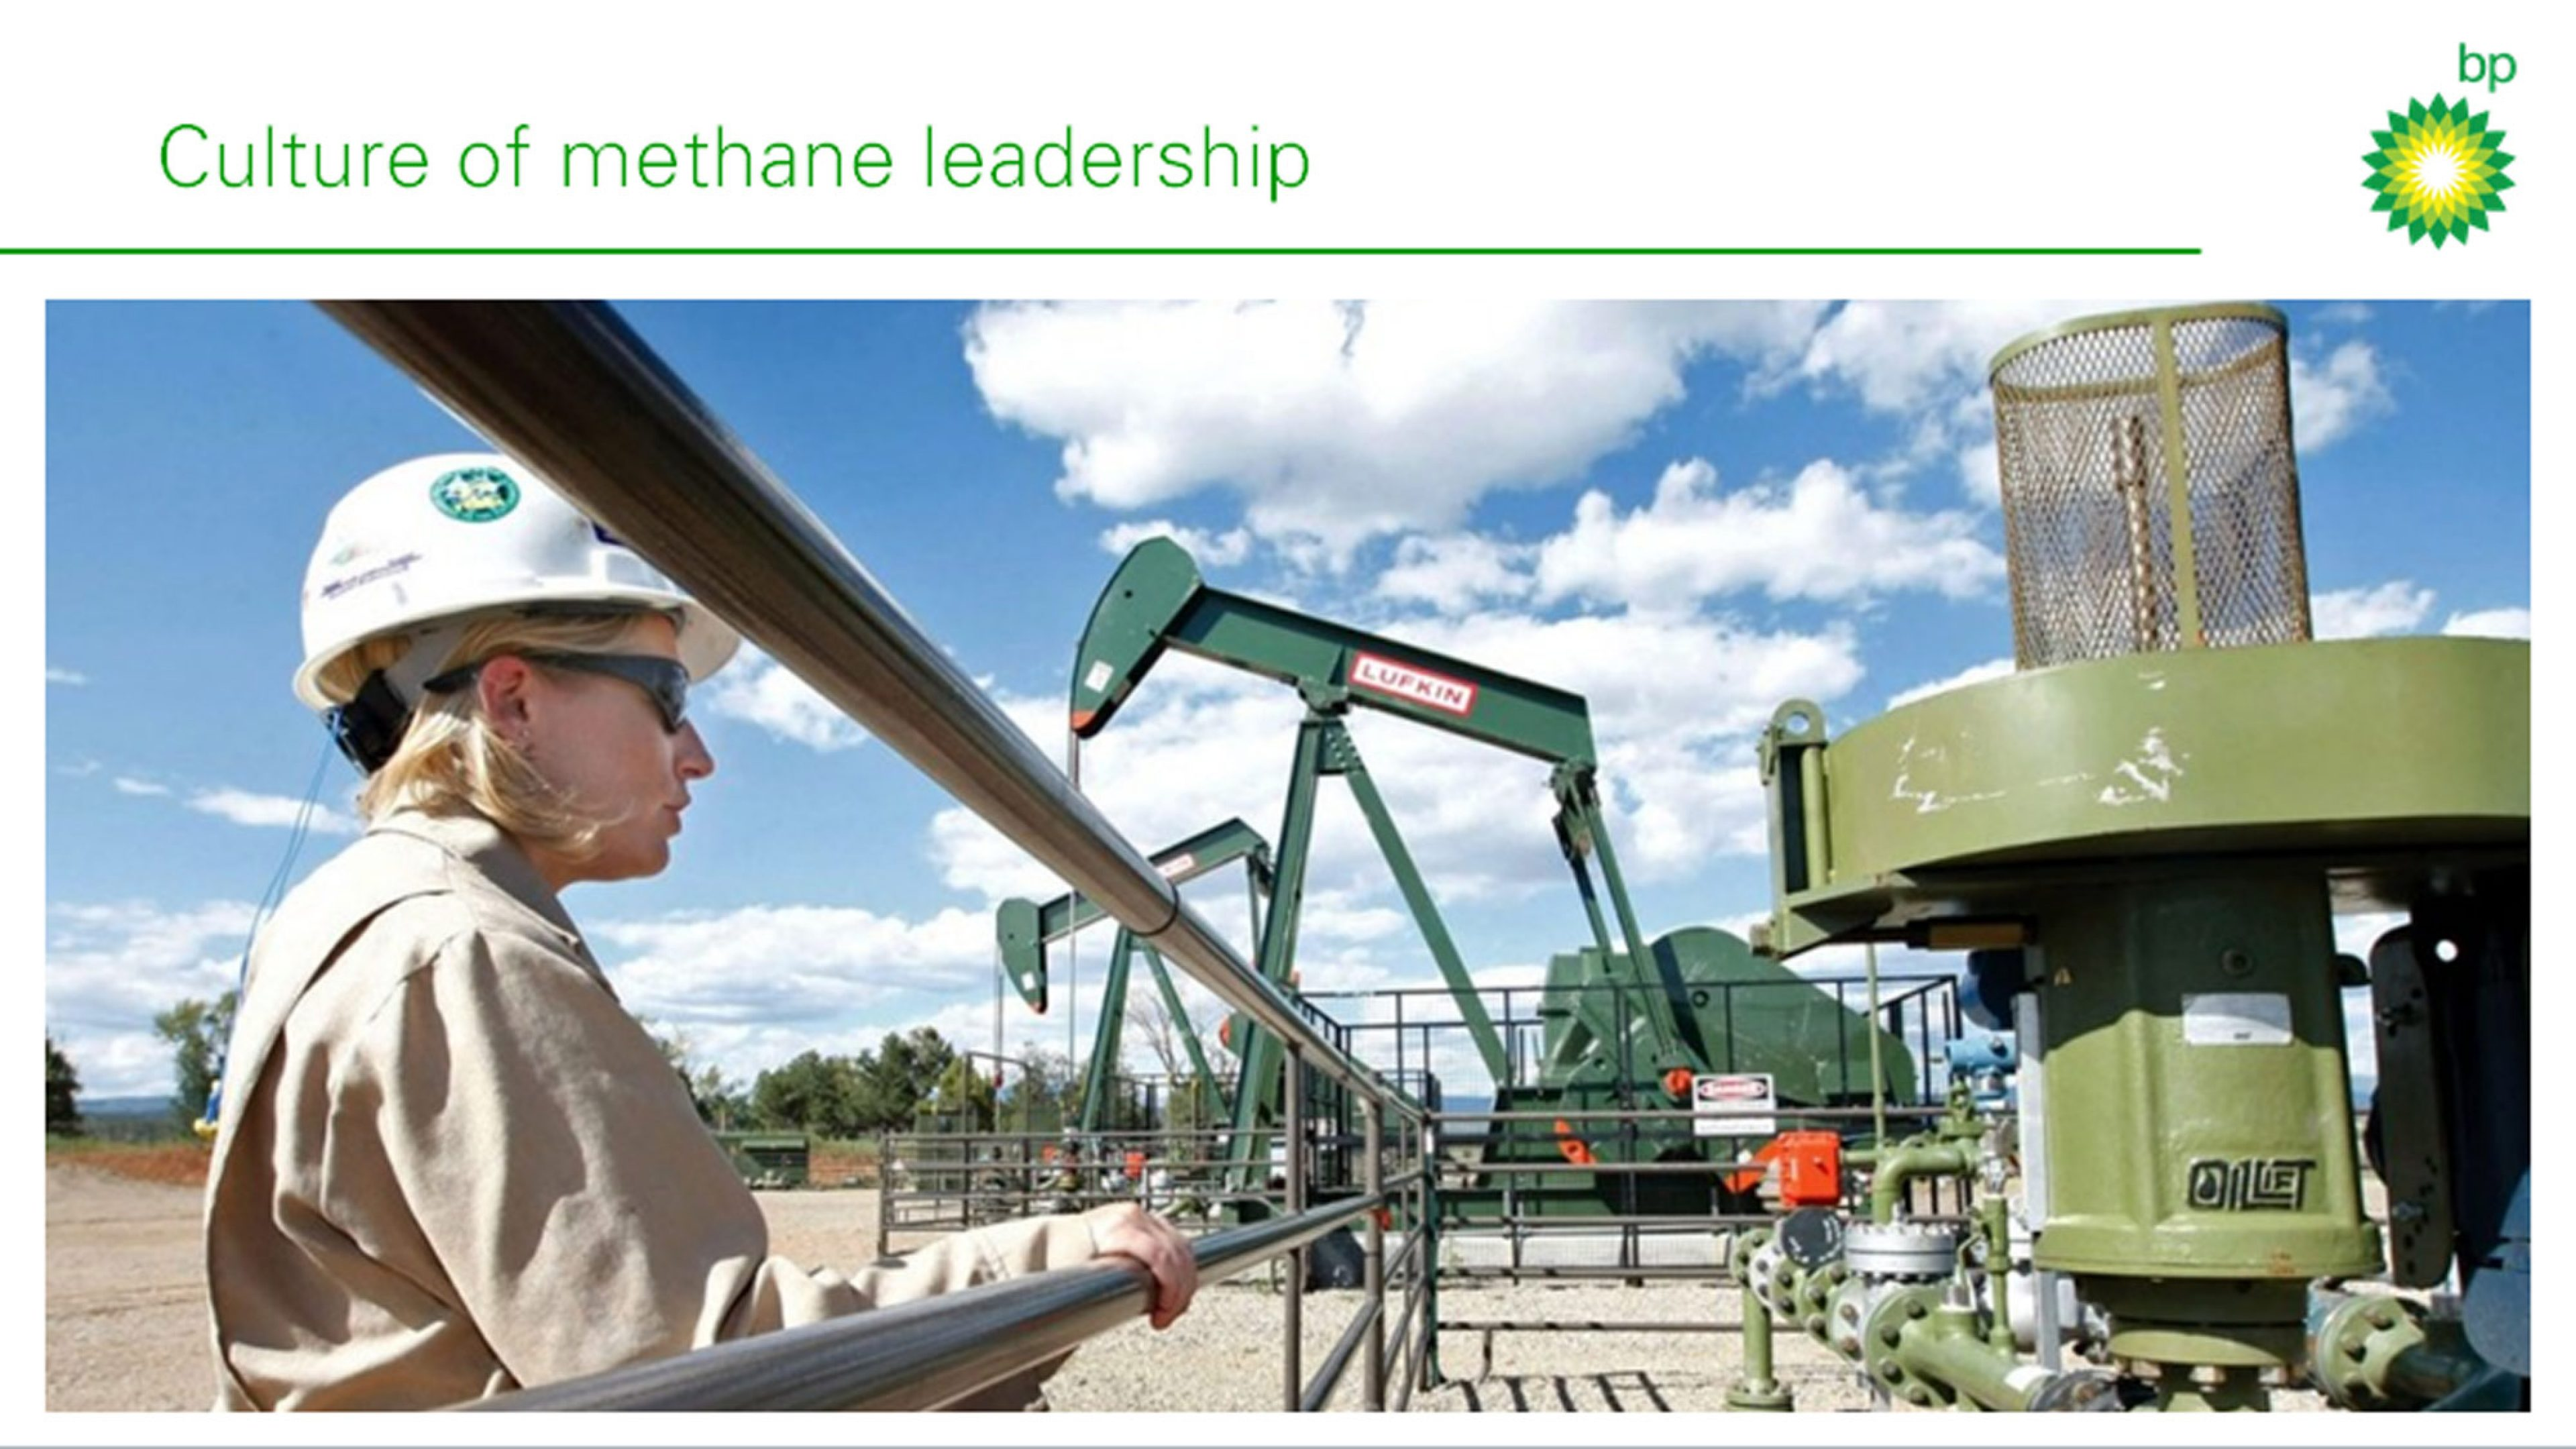 Action in the field - culture of methane leadership